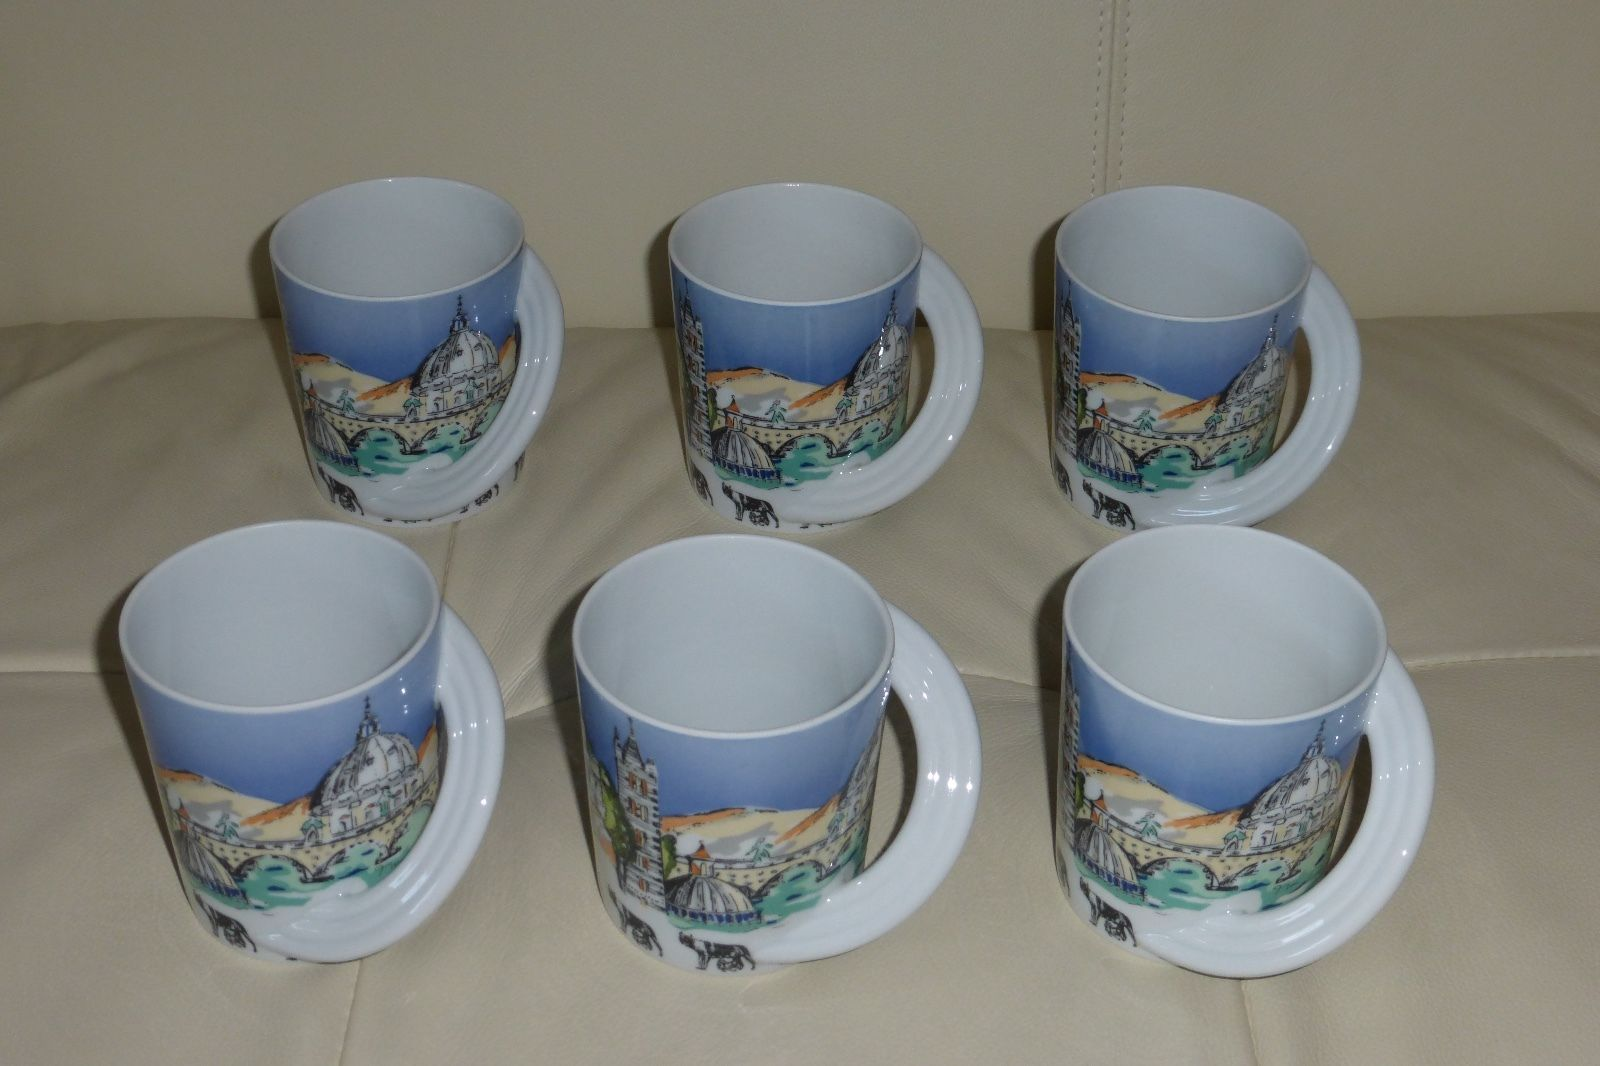 6 Rosenthal City Cup Studio-Line Rome and 31 similar items